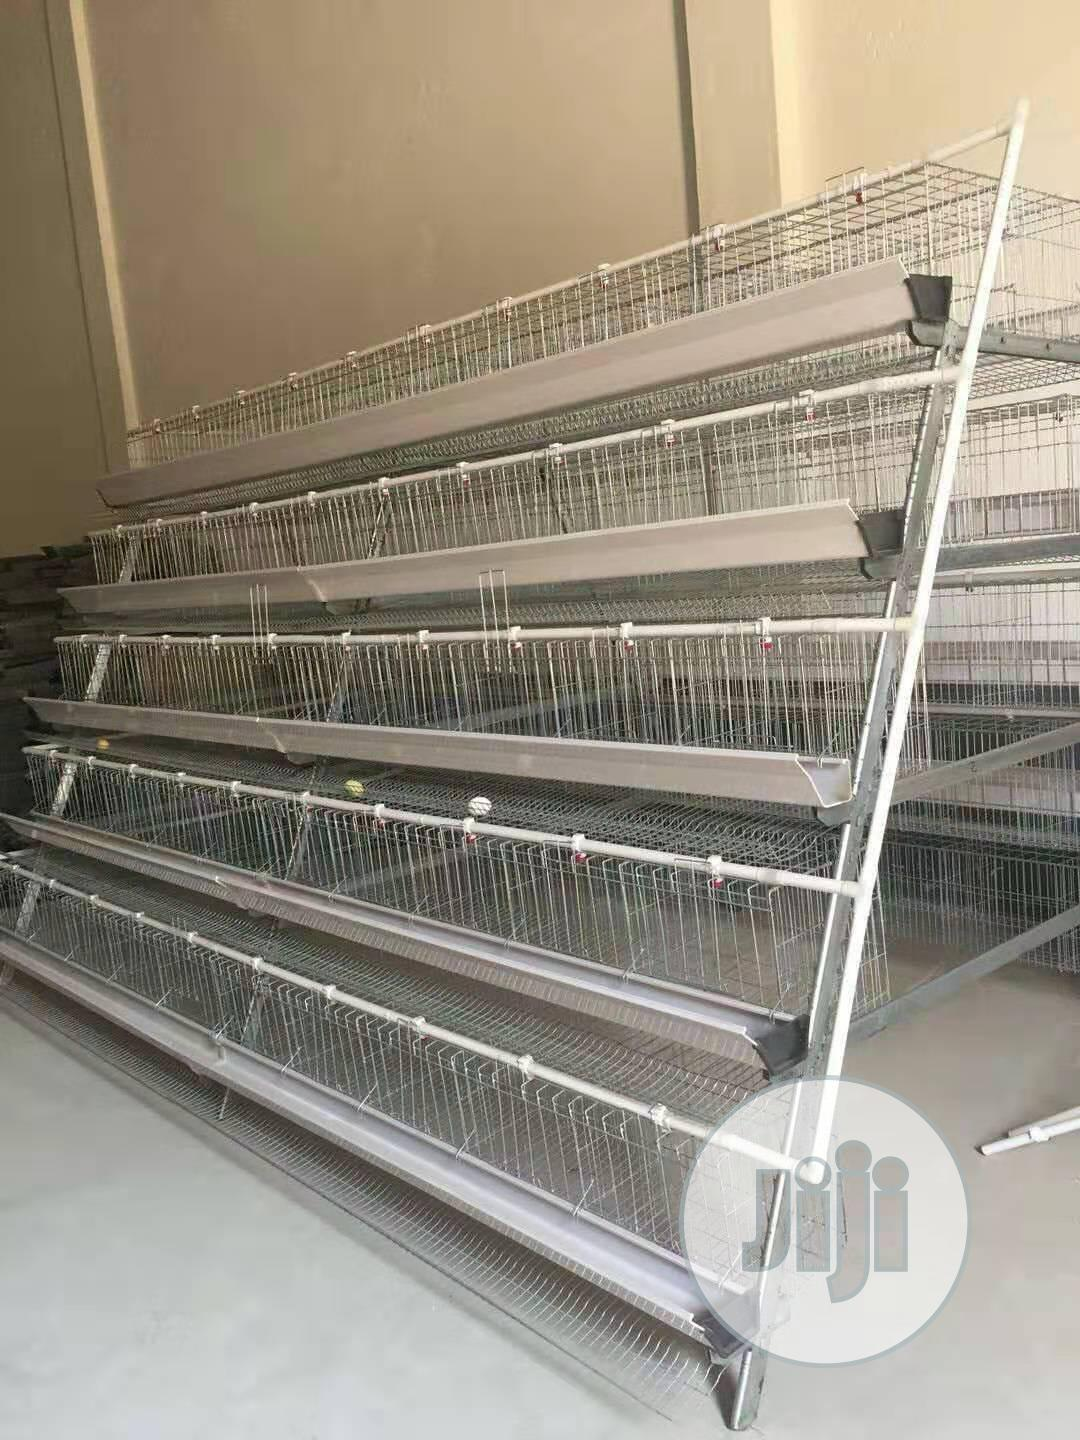 Imported Poultry Cage China Factory Poultry Cages